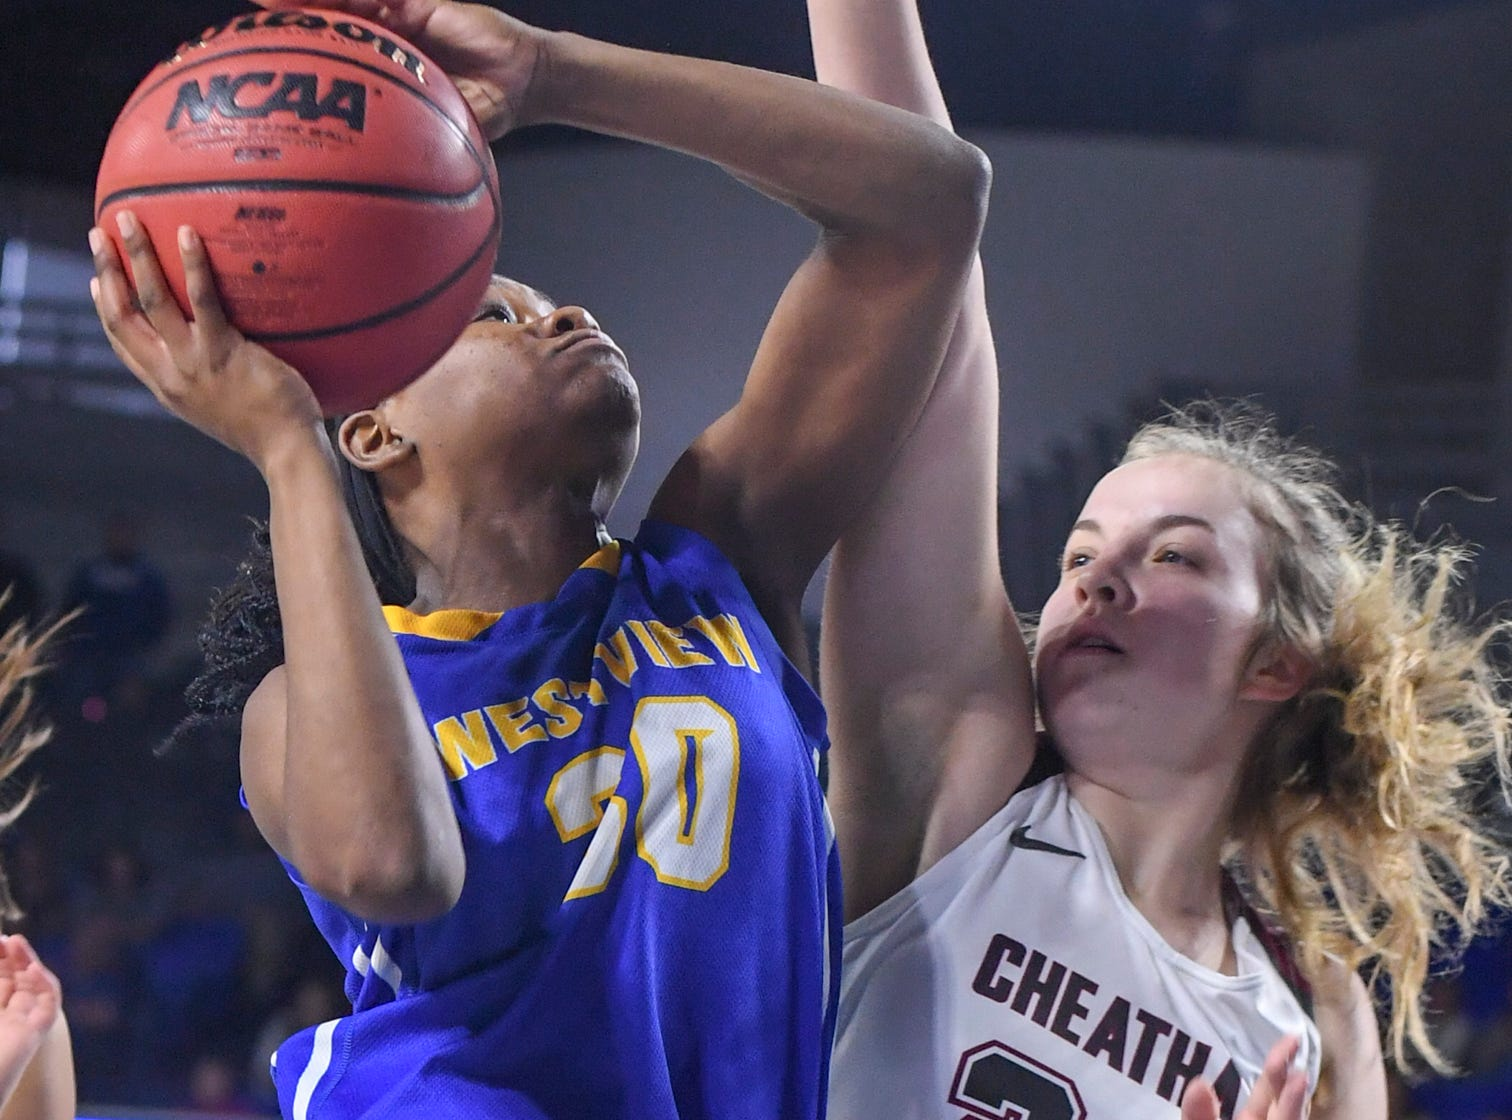 Westview's Tiara Yancey (30) draws a foul on Cheatham County's Alli Douglas (24) during their Class AA championship game, Saturday, March 9, 2019, in Murfreesboro.